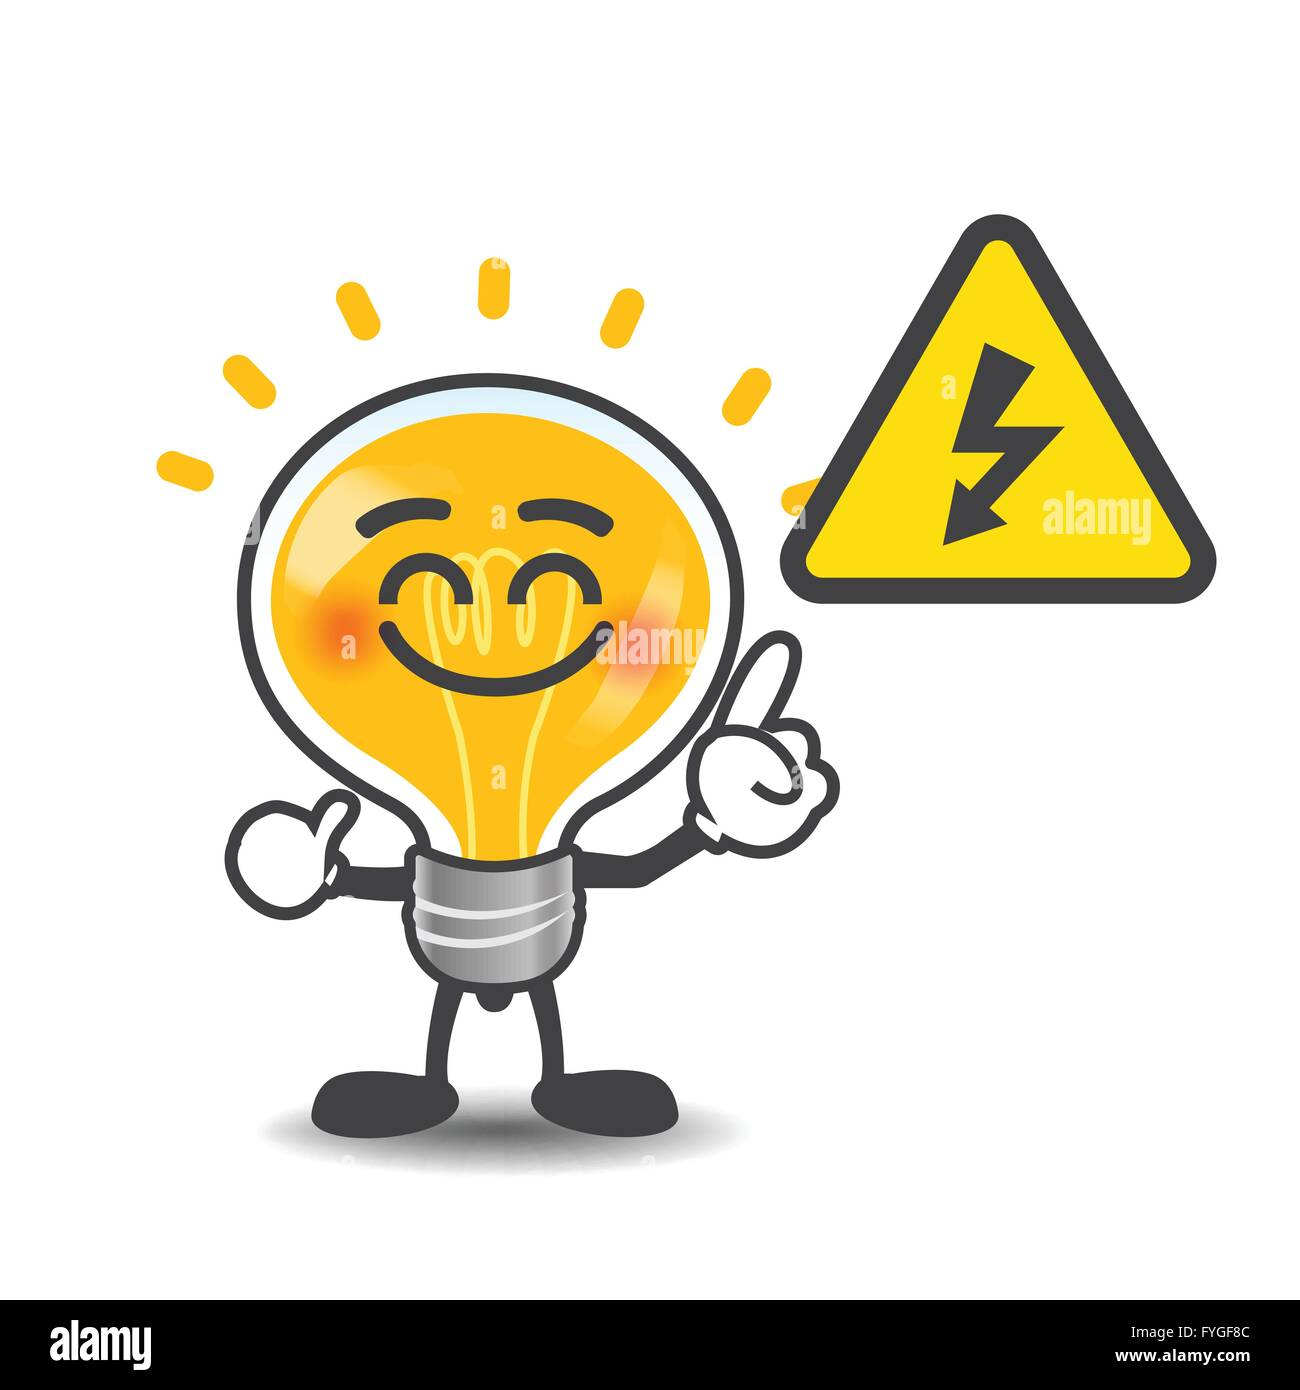 Bulb Lamp Cartoon Pointing To Electric Power Volt Symbol Isolated On The White Background Vector Illustration